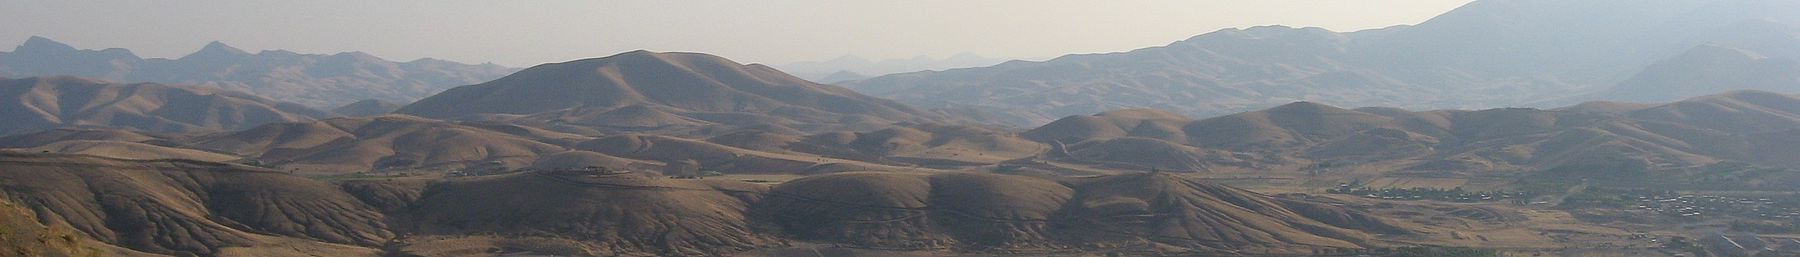 WV banner Kurdistan province Mountains around Sanandaj.jpg